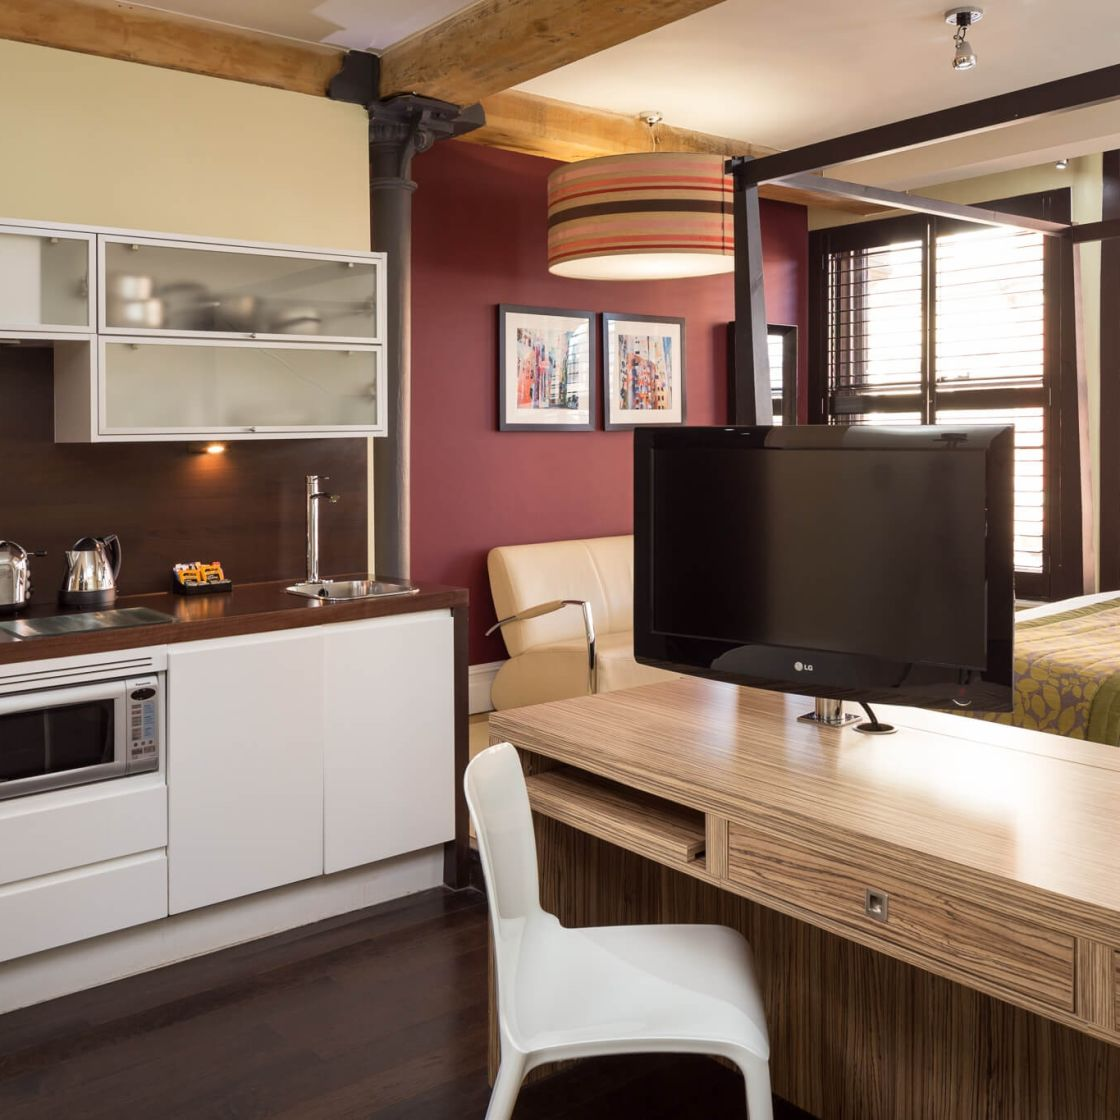 Grande Studio Student Apartment in Manchester with Fully Equipped Kitchen and Four Poster Bed. IconInc @ Roomzzz